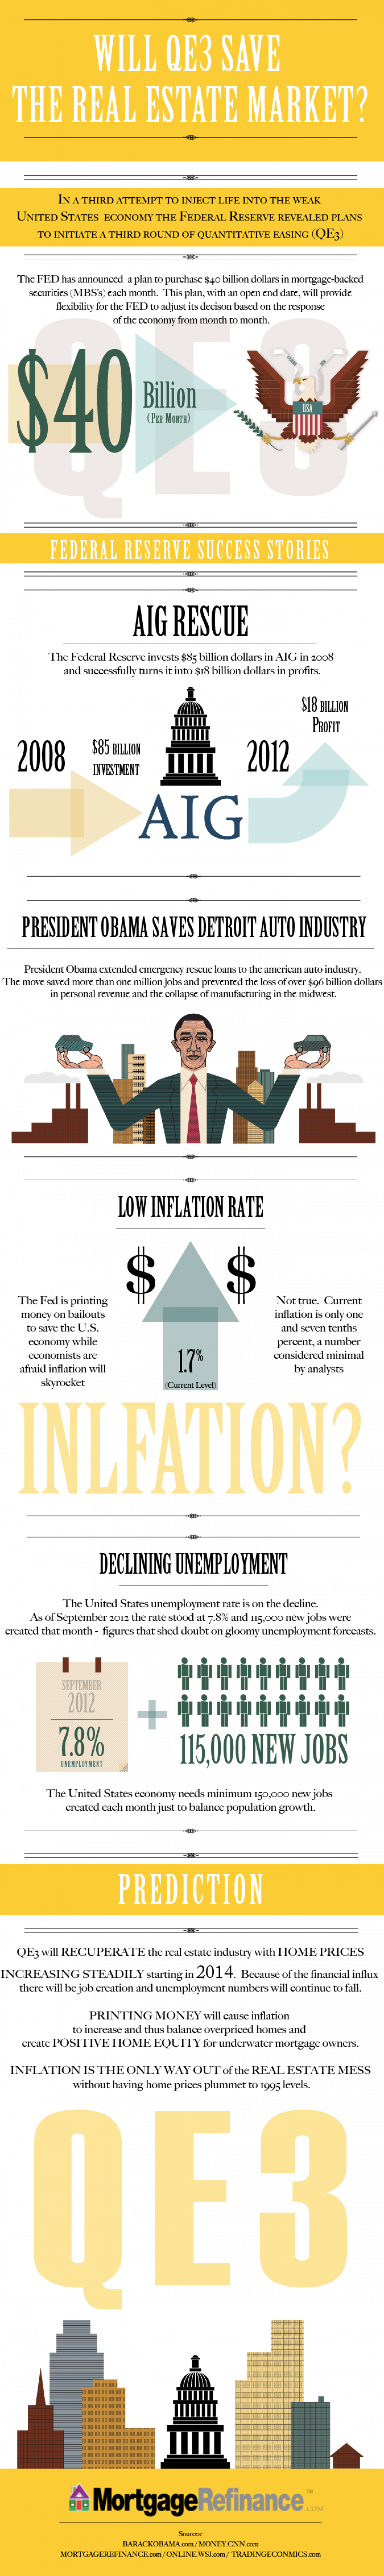 Will QE3 Save The Real-Estate Market  Infographic